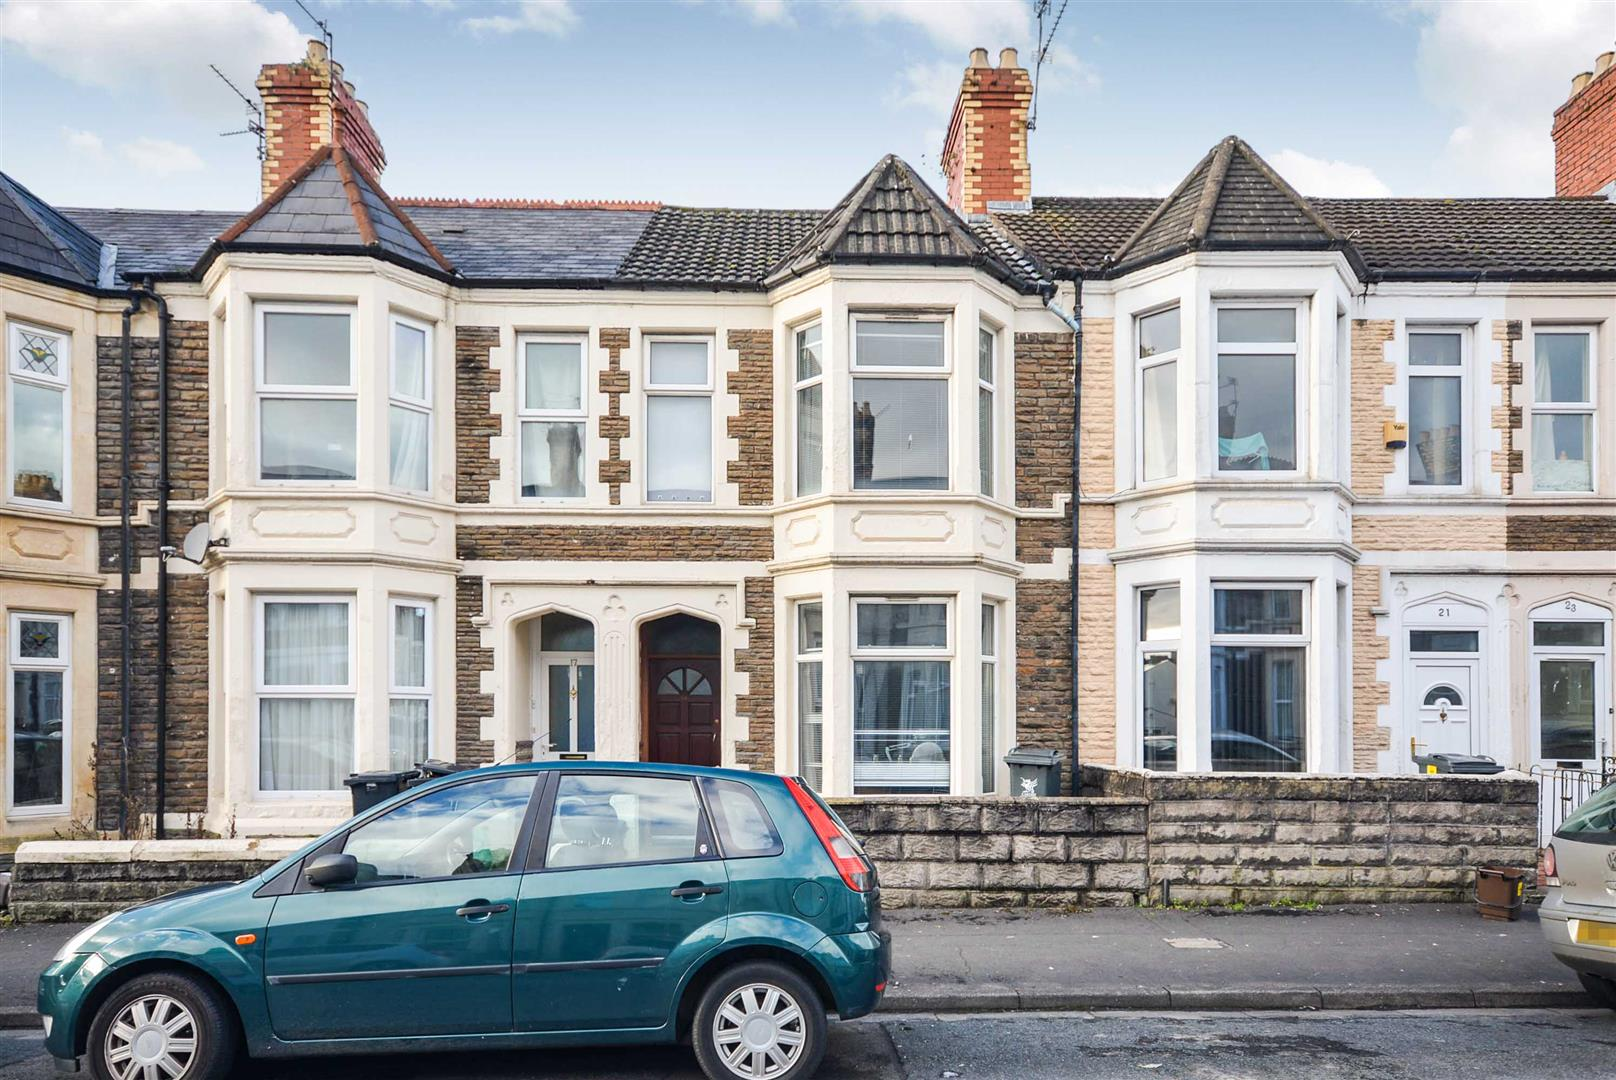 4 bed private halls to rent in Tewkesbury Street, Cardiff, CF24